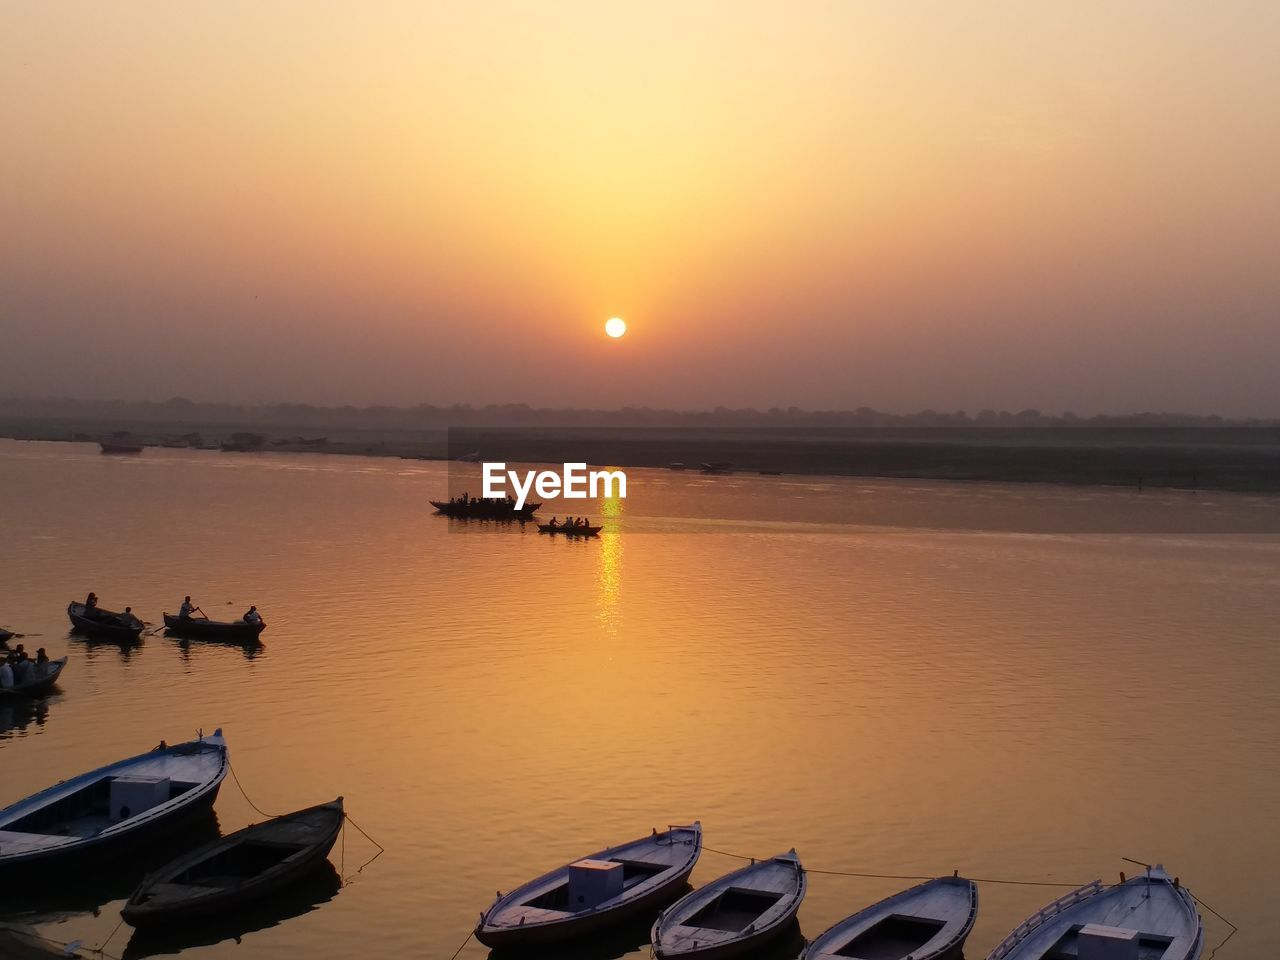 sunset, nature, water, nautical vessel, reflection, orange color, beauty in nature, sun, scenics, sky, mode of transport, tranquility, transportation, moored, no people, outdoors, tranquil scene, sunlight, silhouette, sea, horizon over water, day